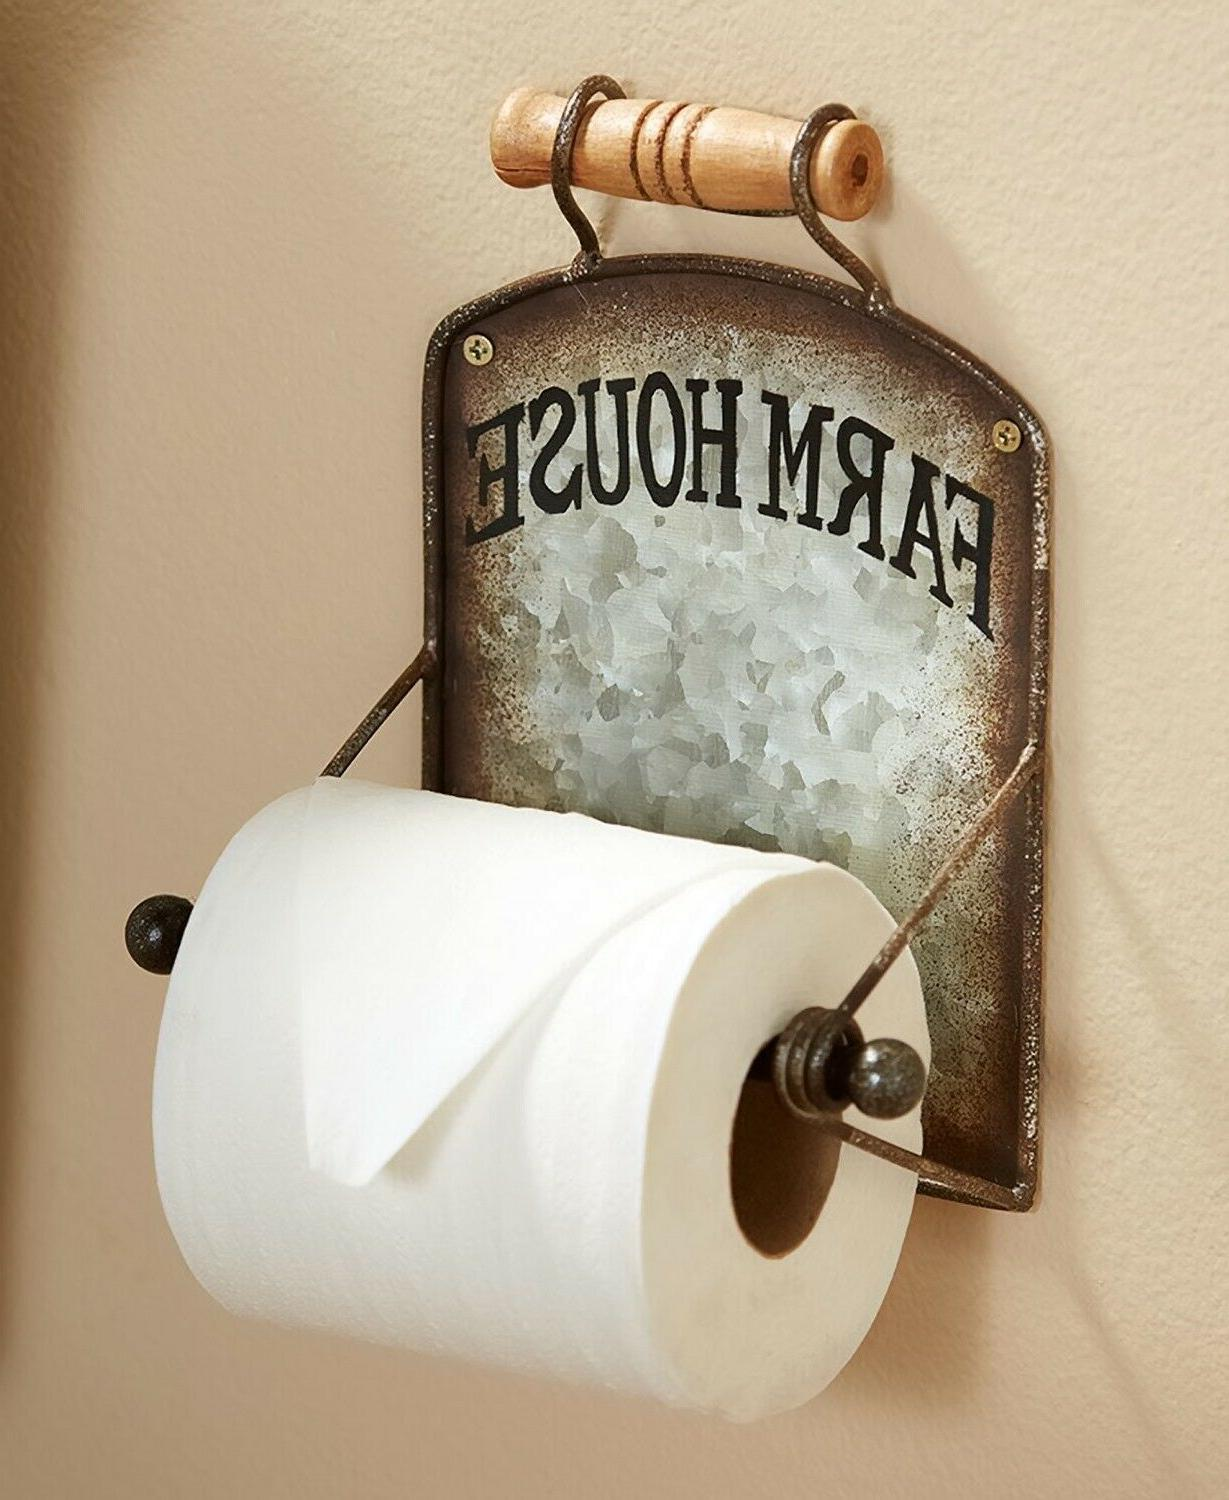 toilet paper holder farmhouse chic country rustic